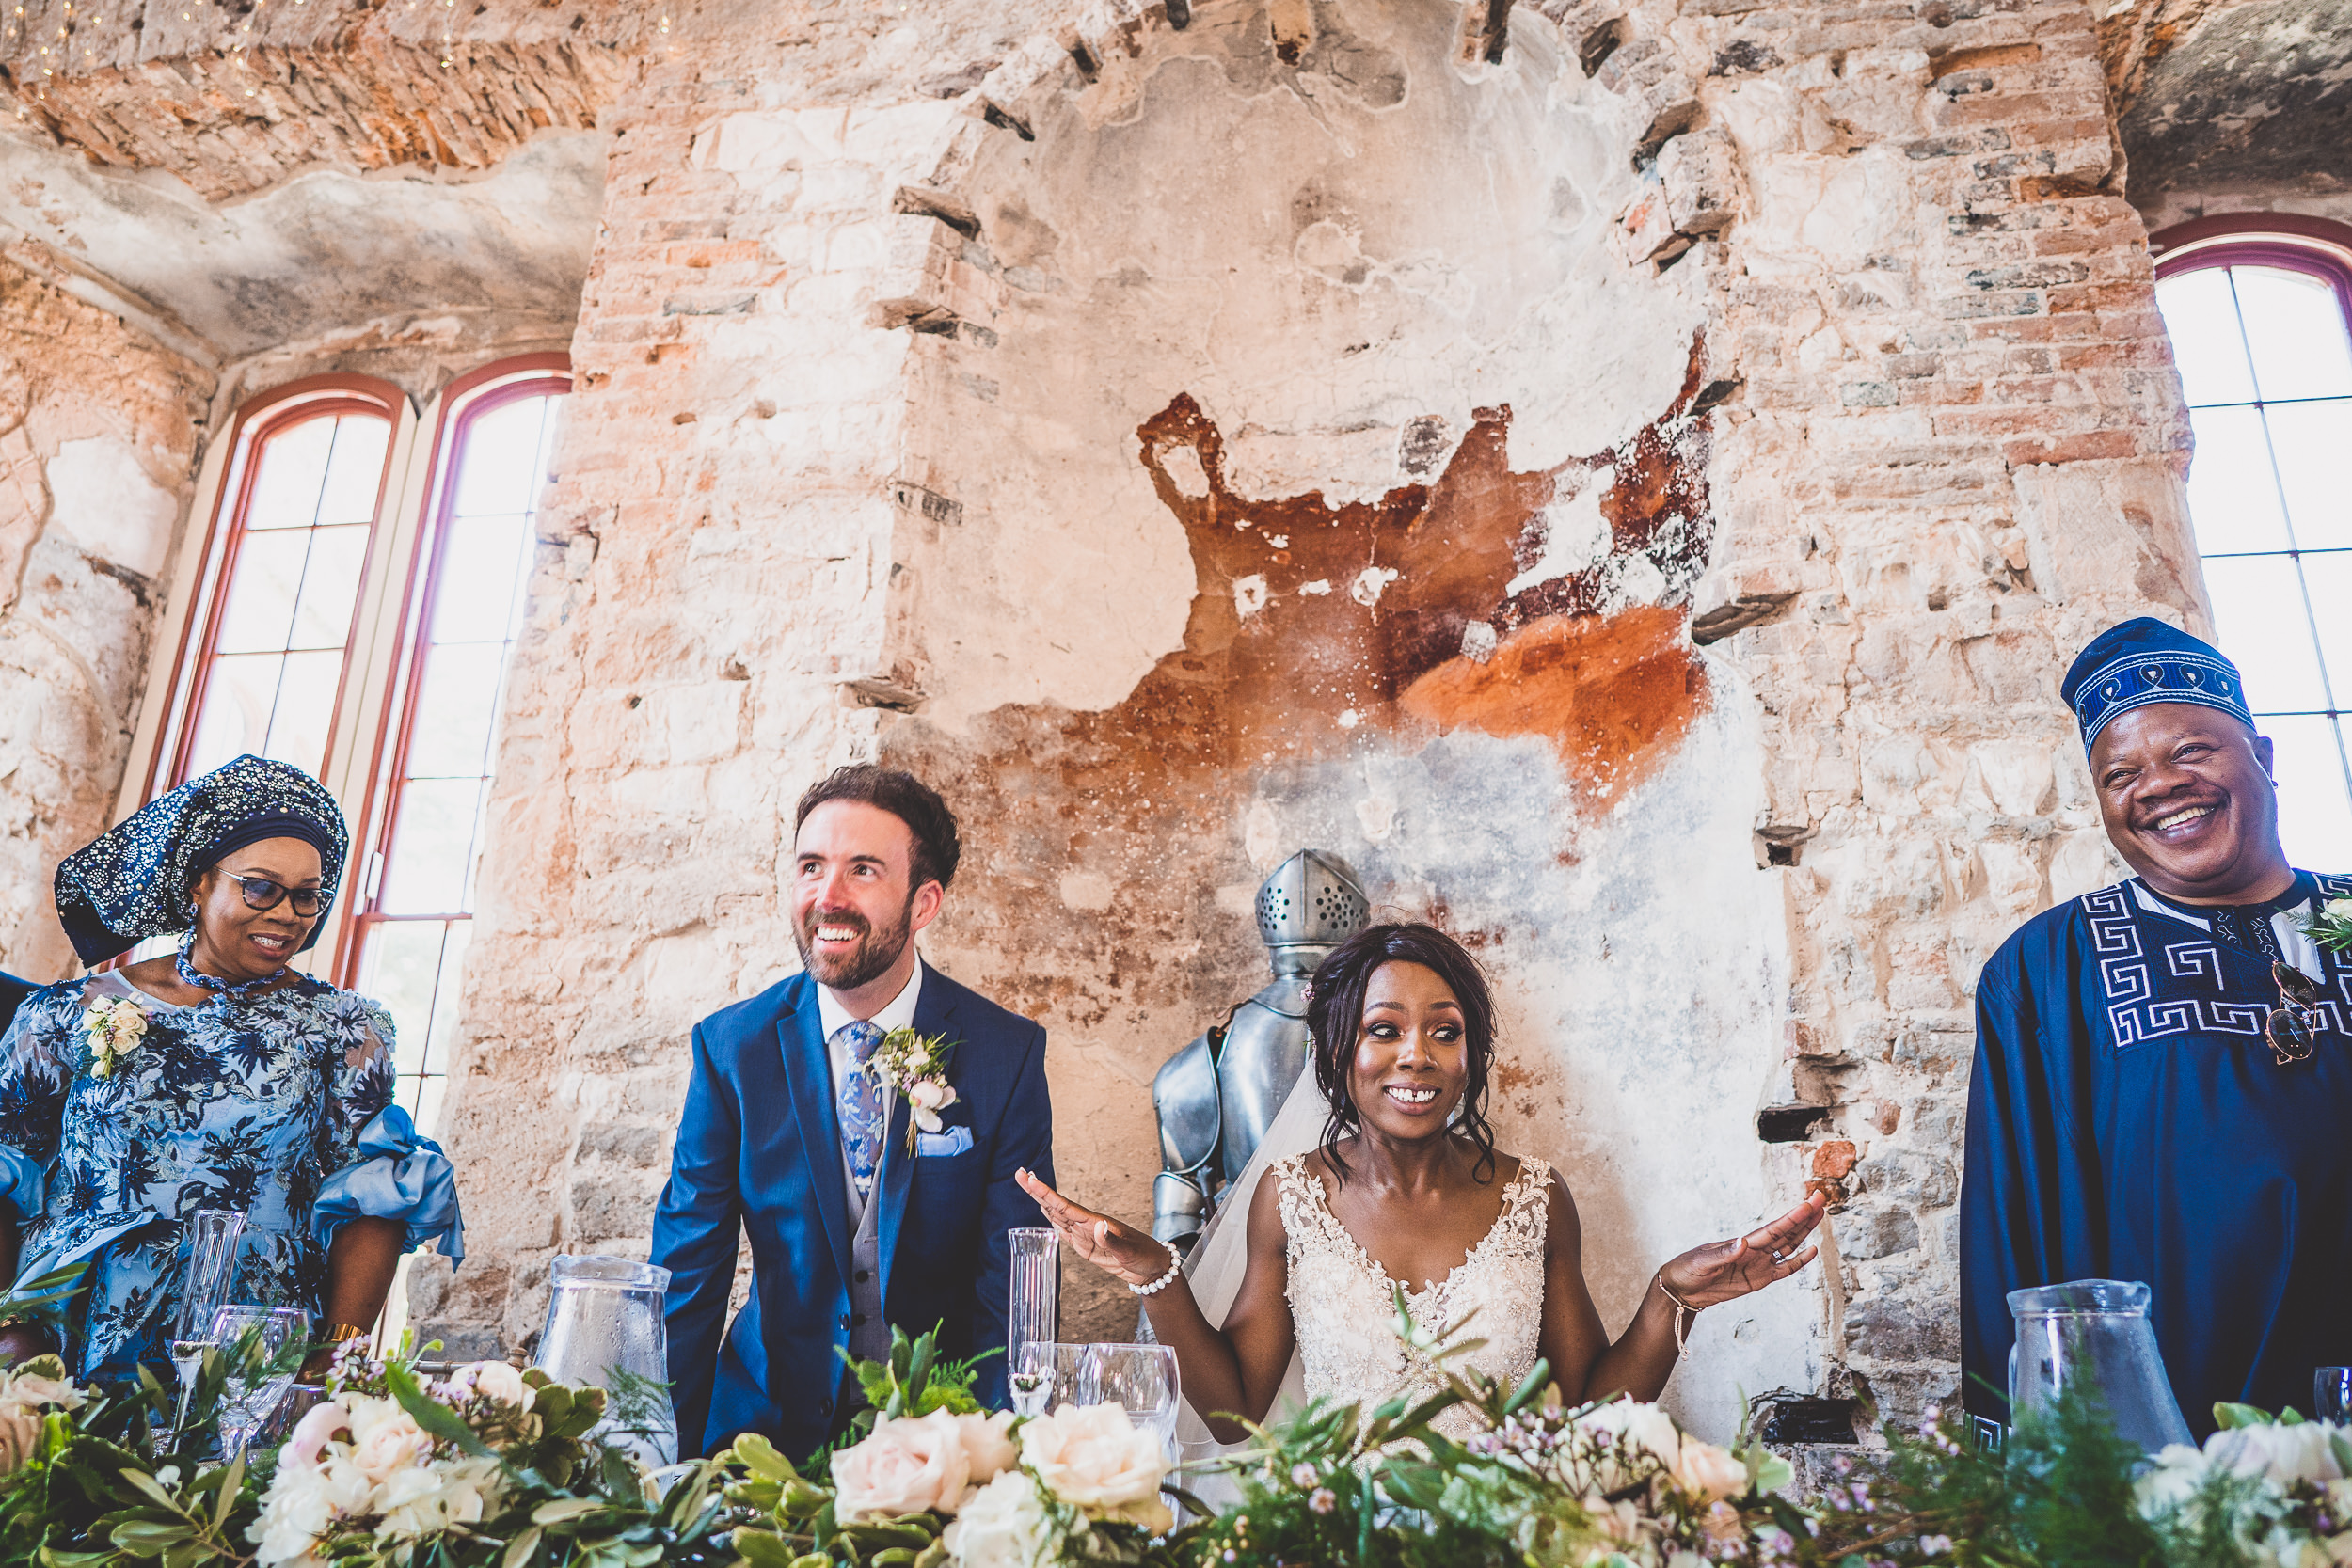 Lulworth Castle Wedding Photography | Amina & David Amina David ss 067